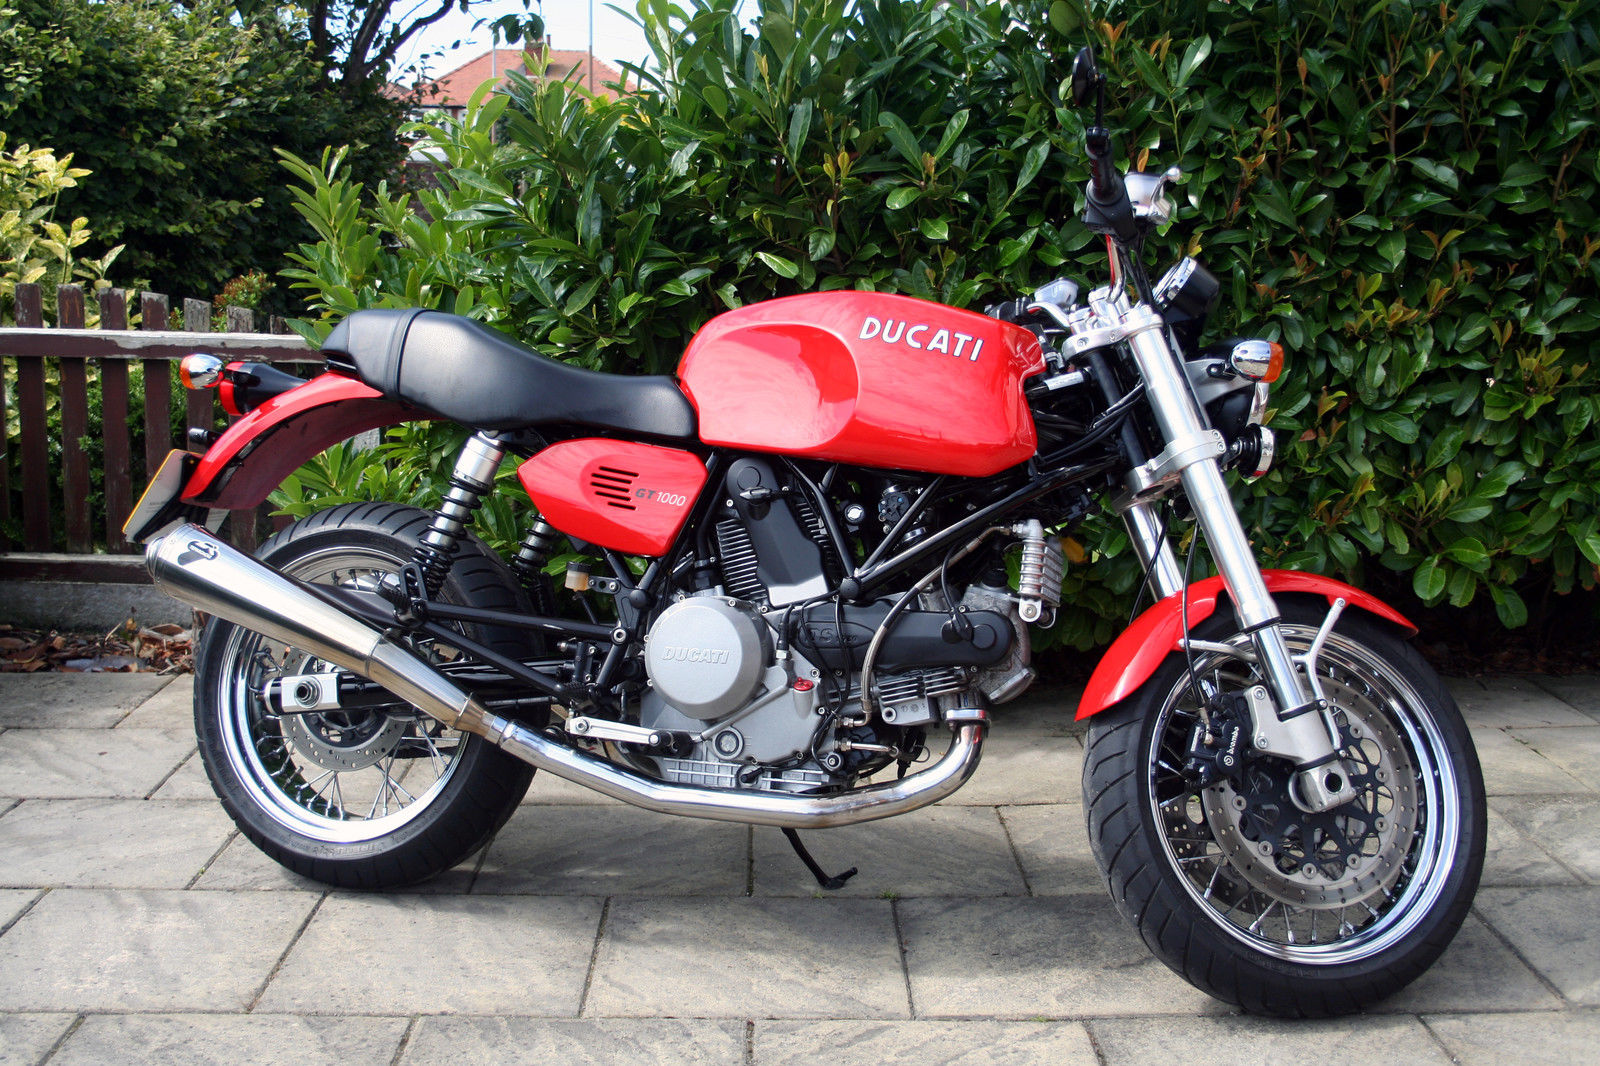 2008 Ducati Gt 1000 Red With Termignoni Exhausts 12m Mot